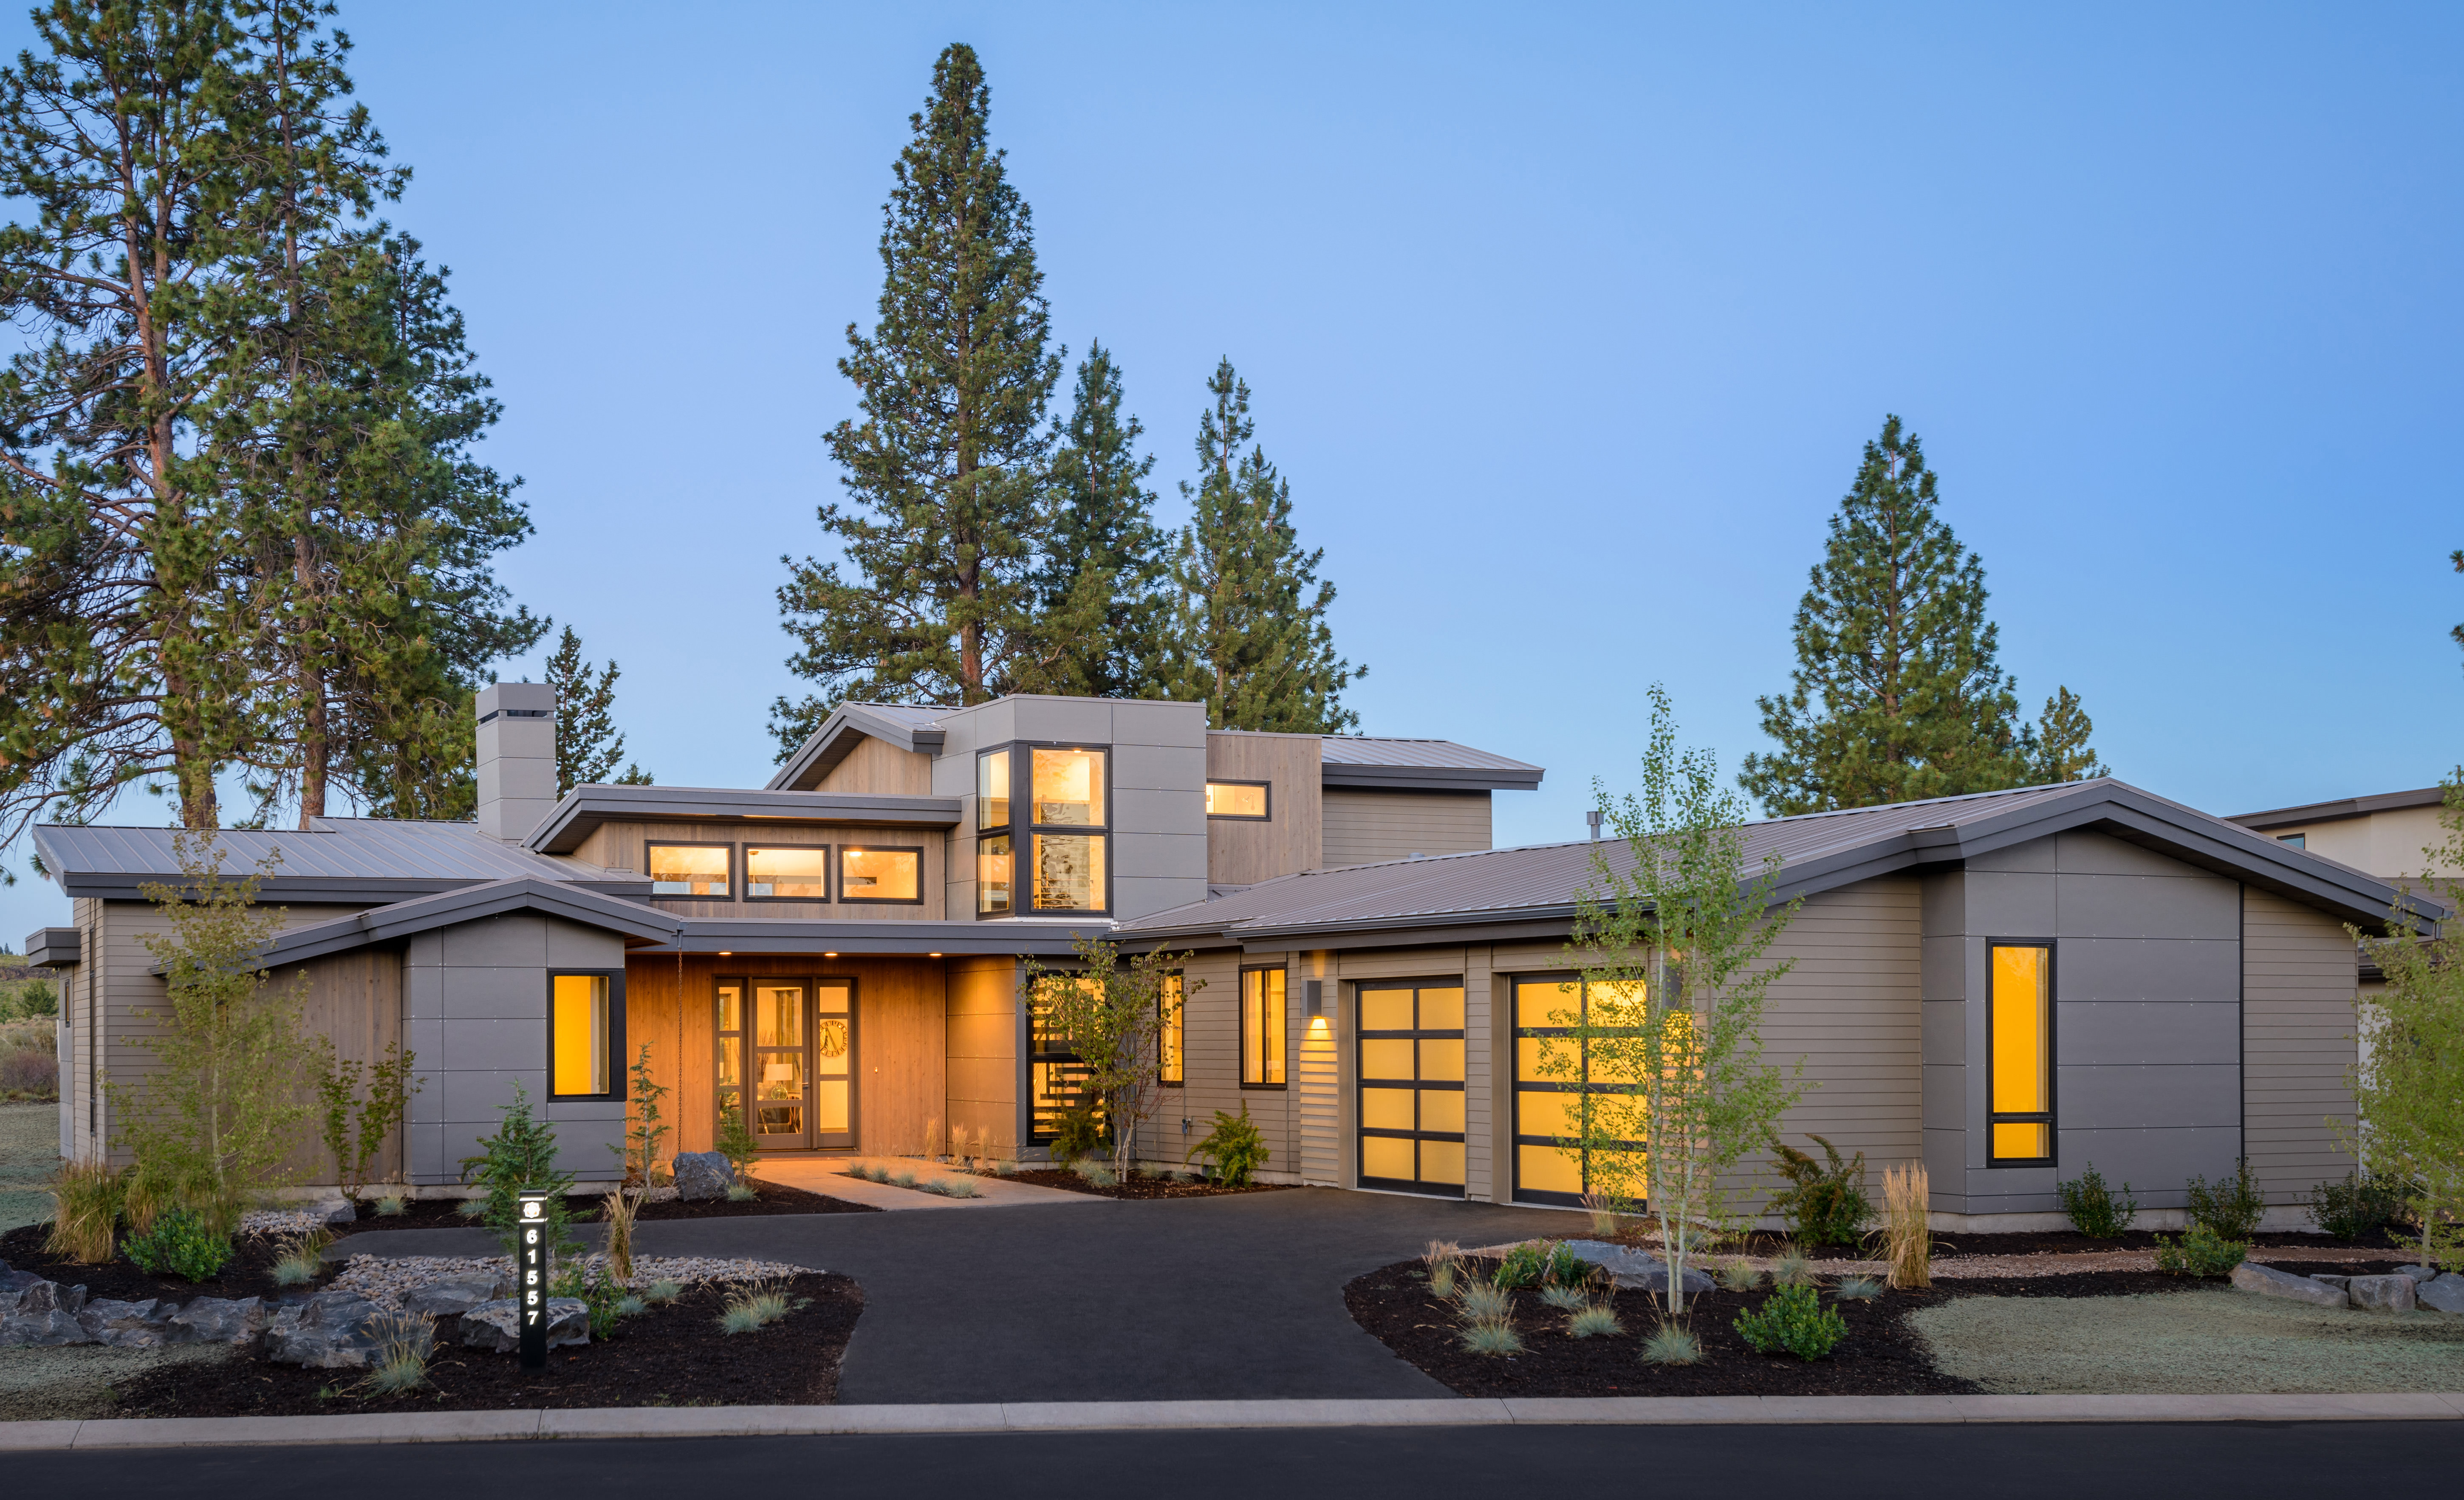 Contemporary style homes are the popular modern era houses between